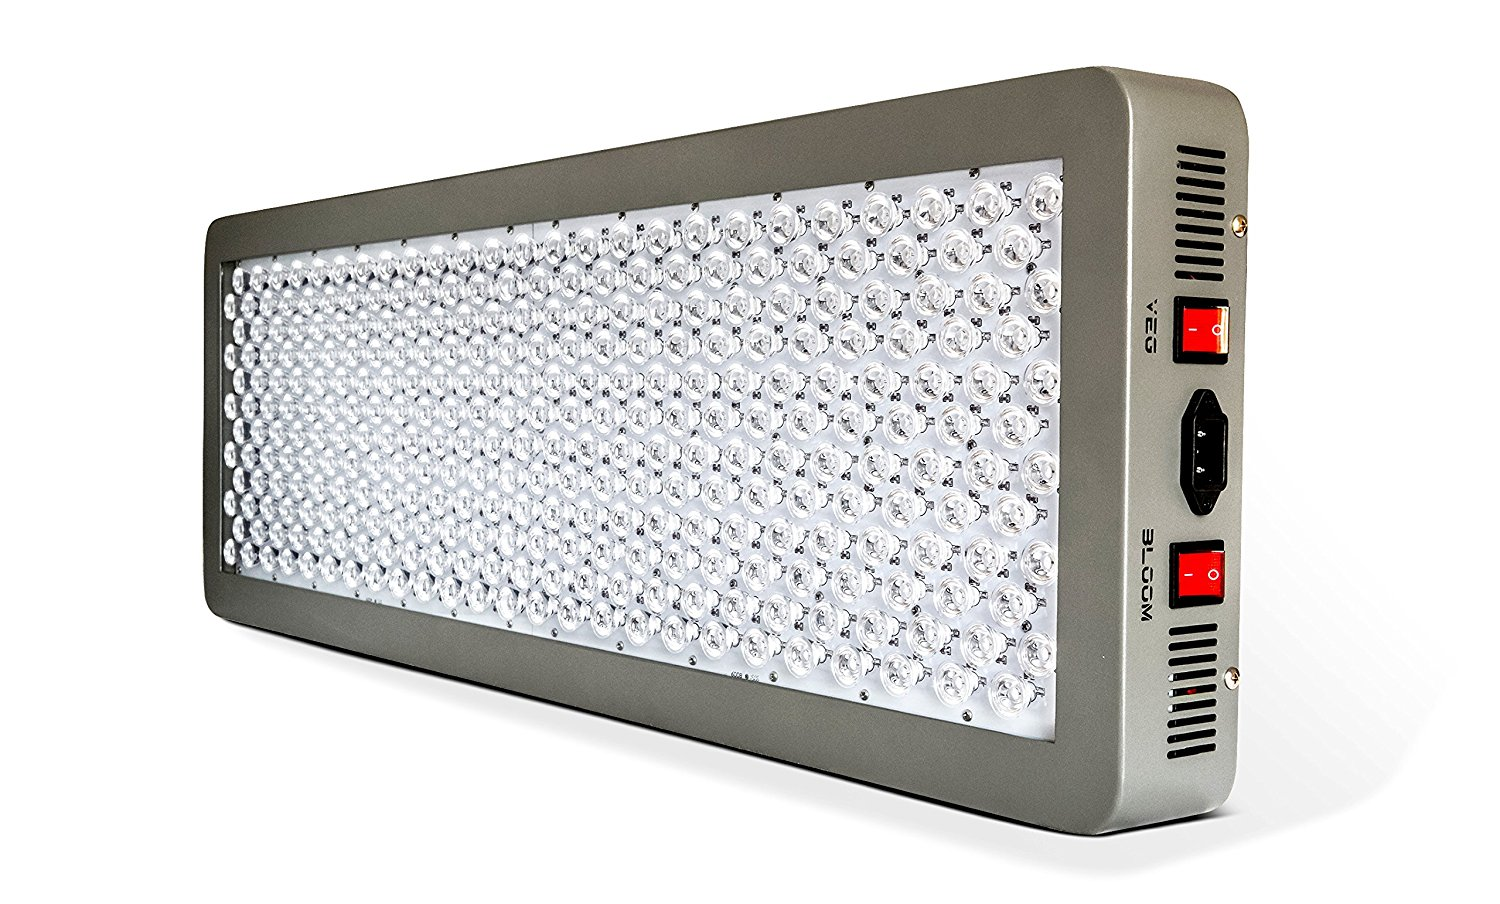 Top 5 Best Full Spectrum Led Grow Lights For Cannabis 2018